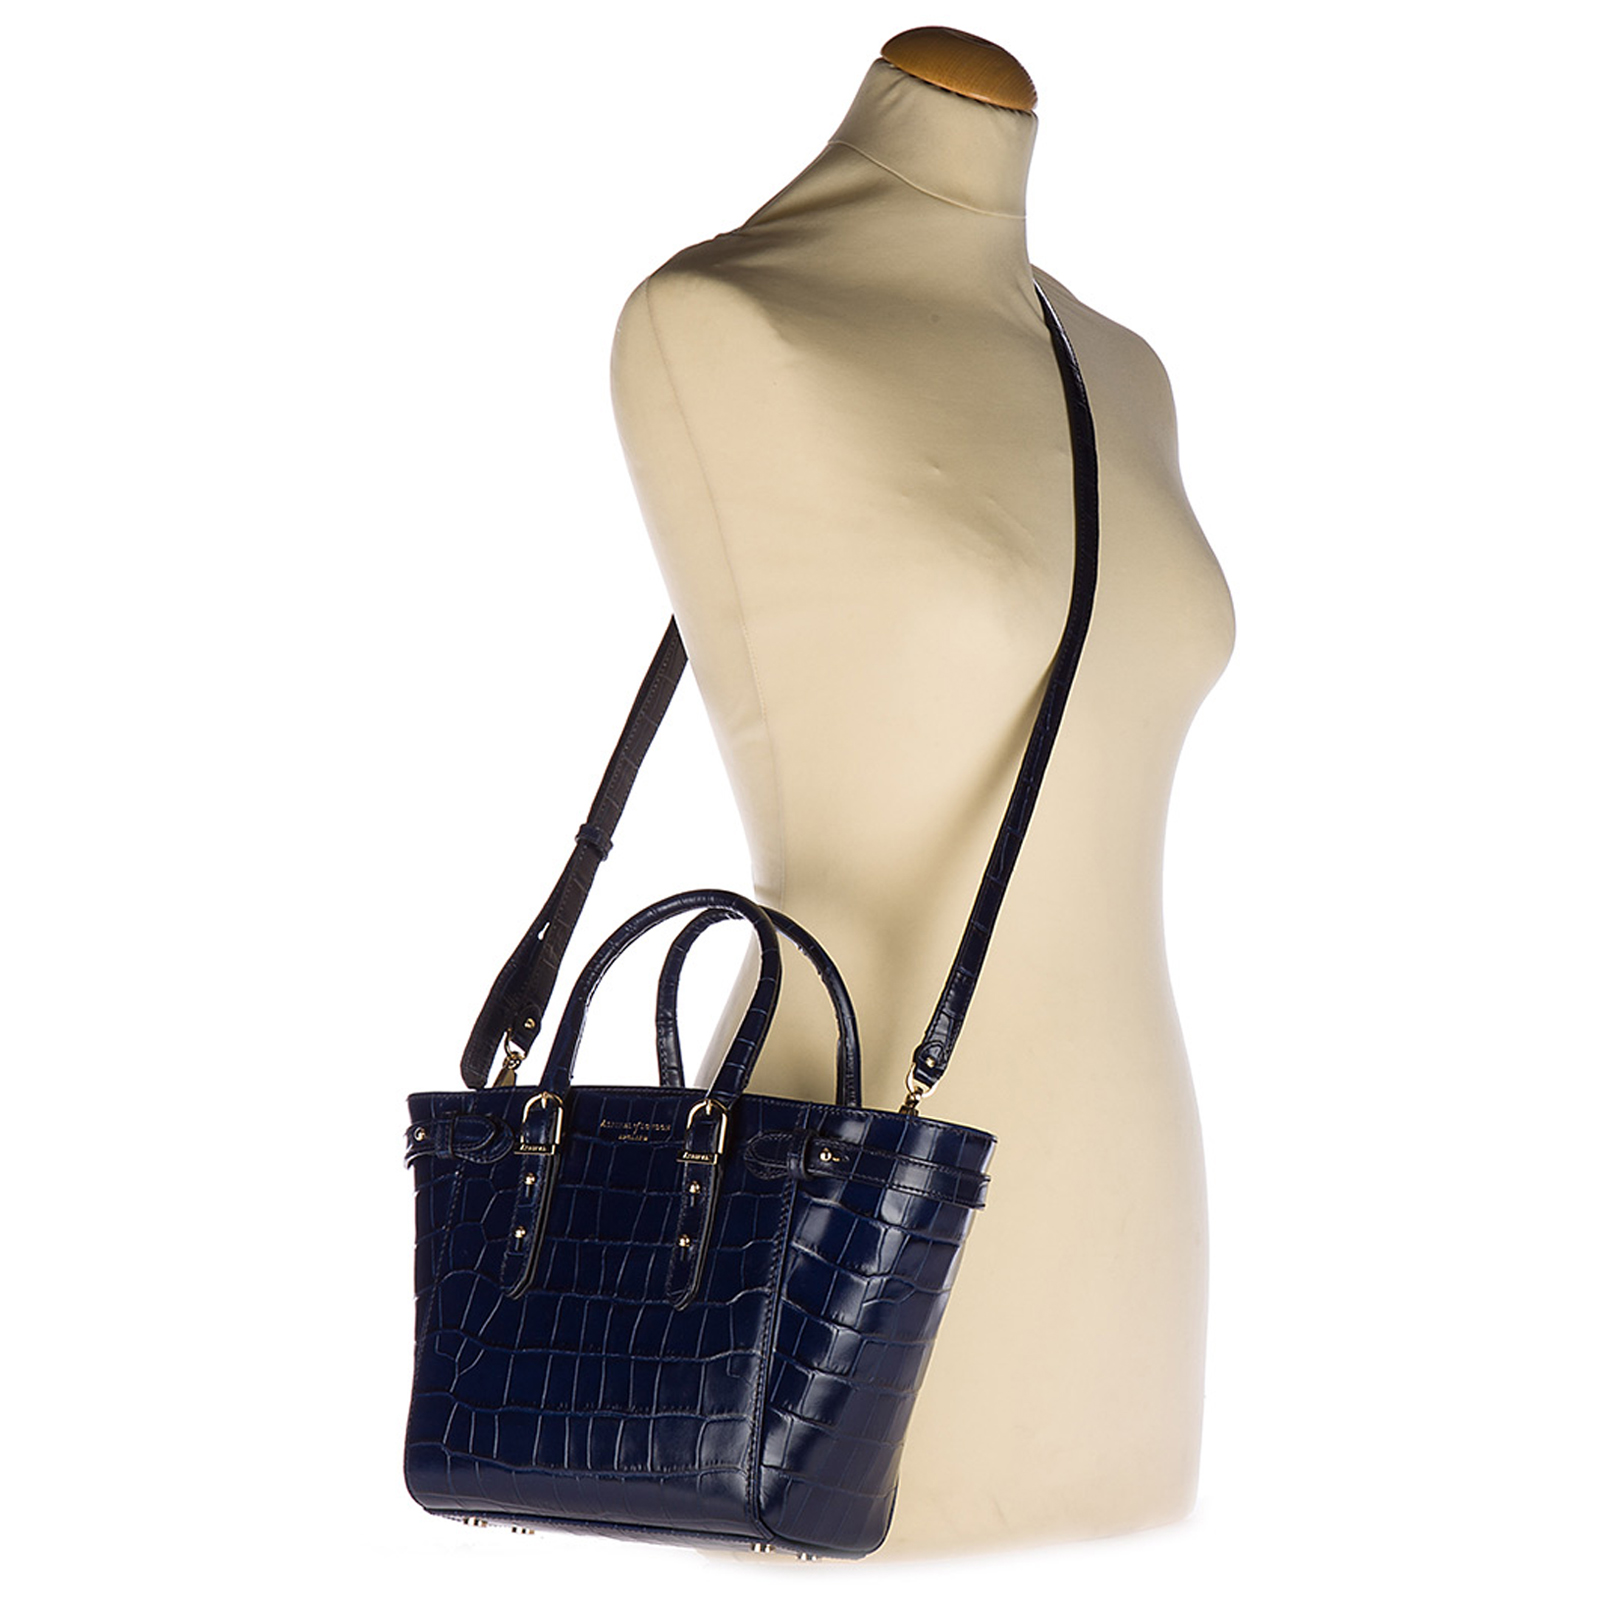 Women's leather handbag shopping bag purse marylebone